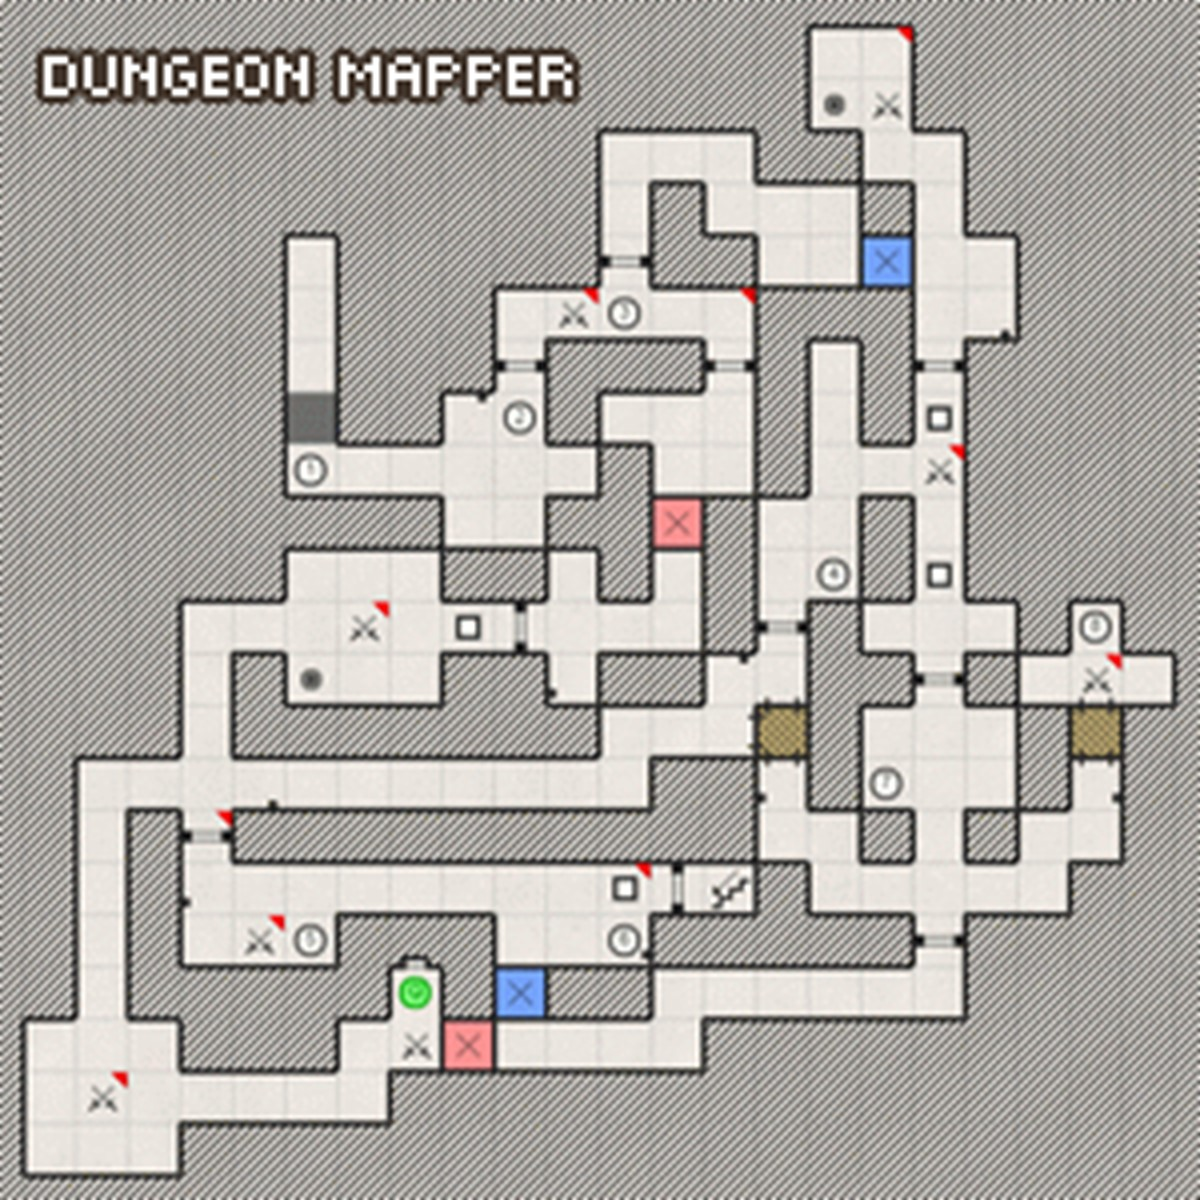 DJ's Dungeon Mapper Alternatives and Similar Websites and